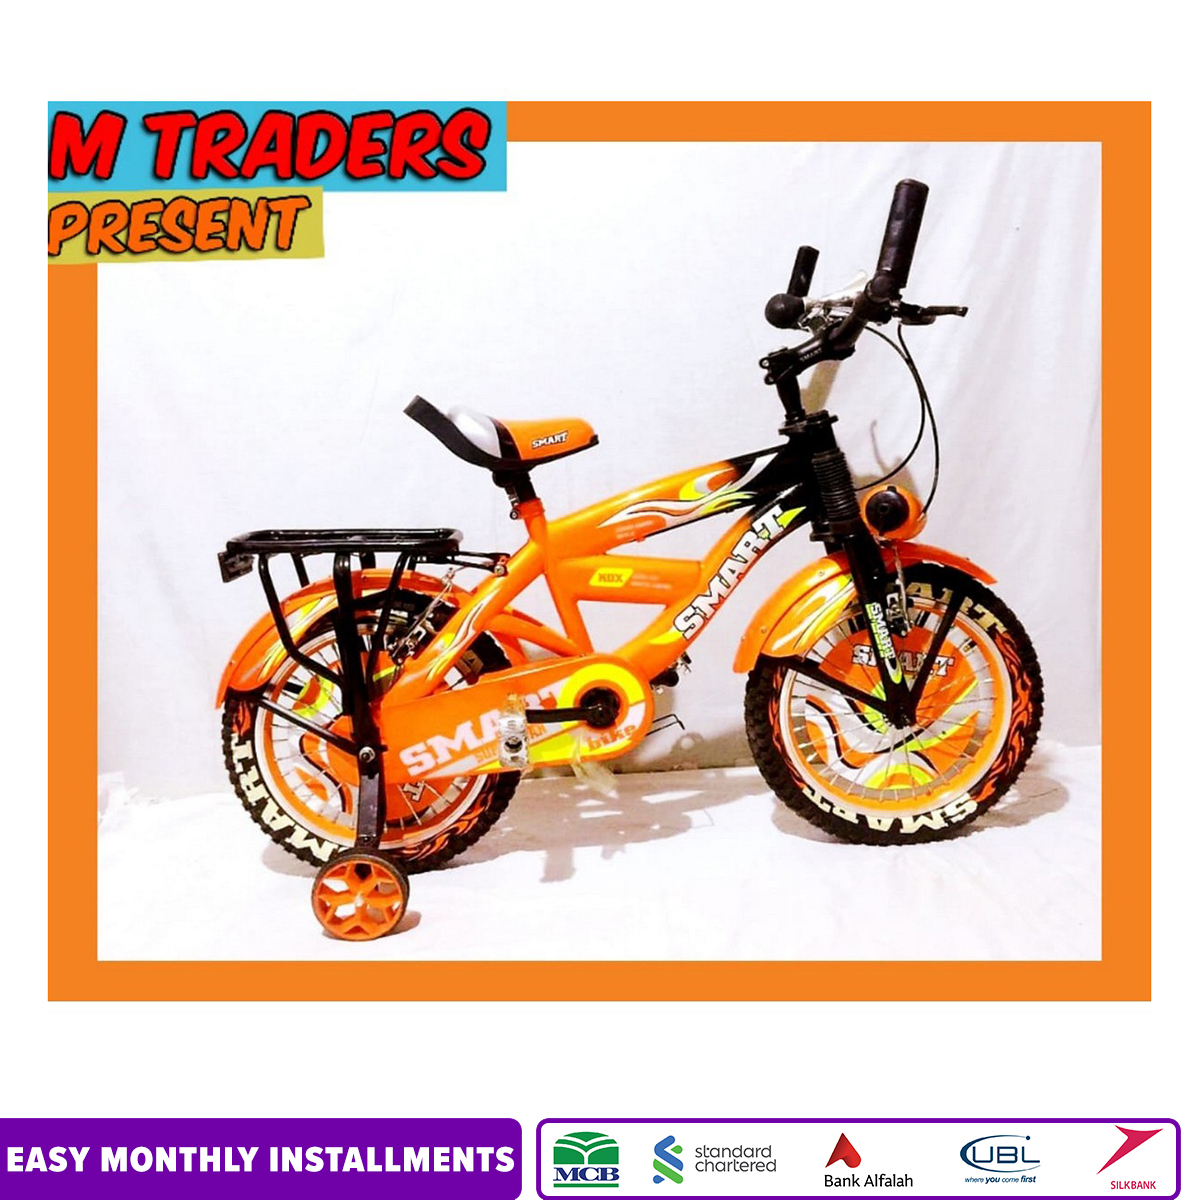 Smart bicycle 16 Inches with Hydraulic brakes New Branded and Stylish look for Boys and Girls=M Traders online